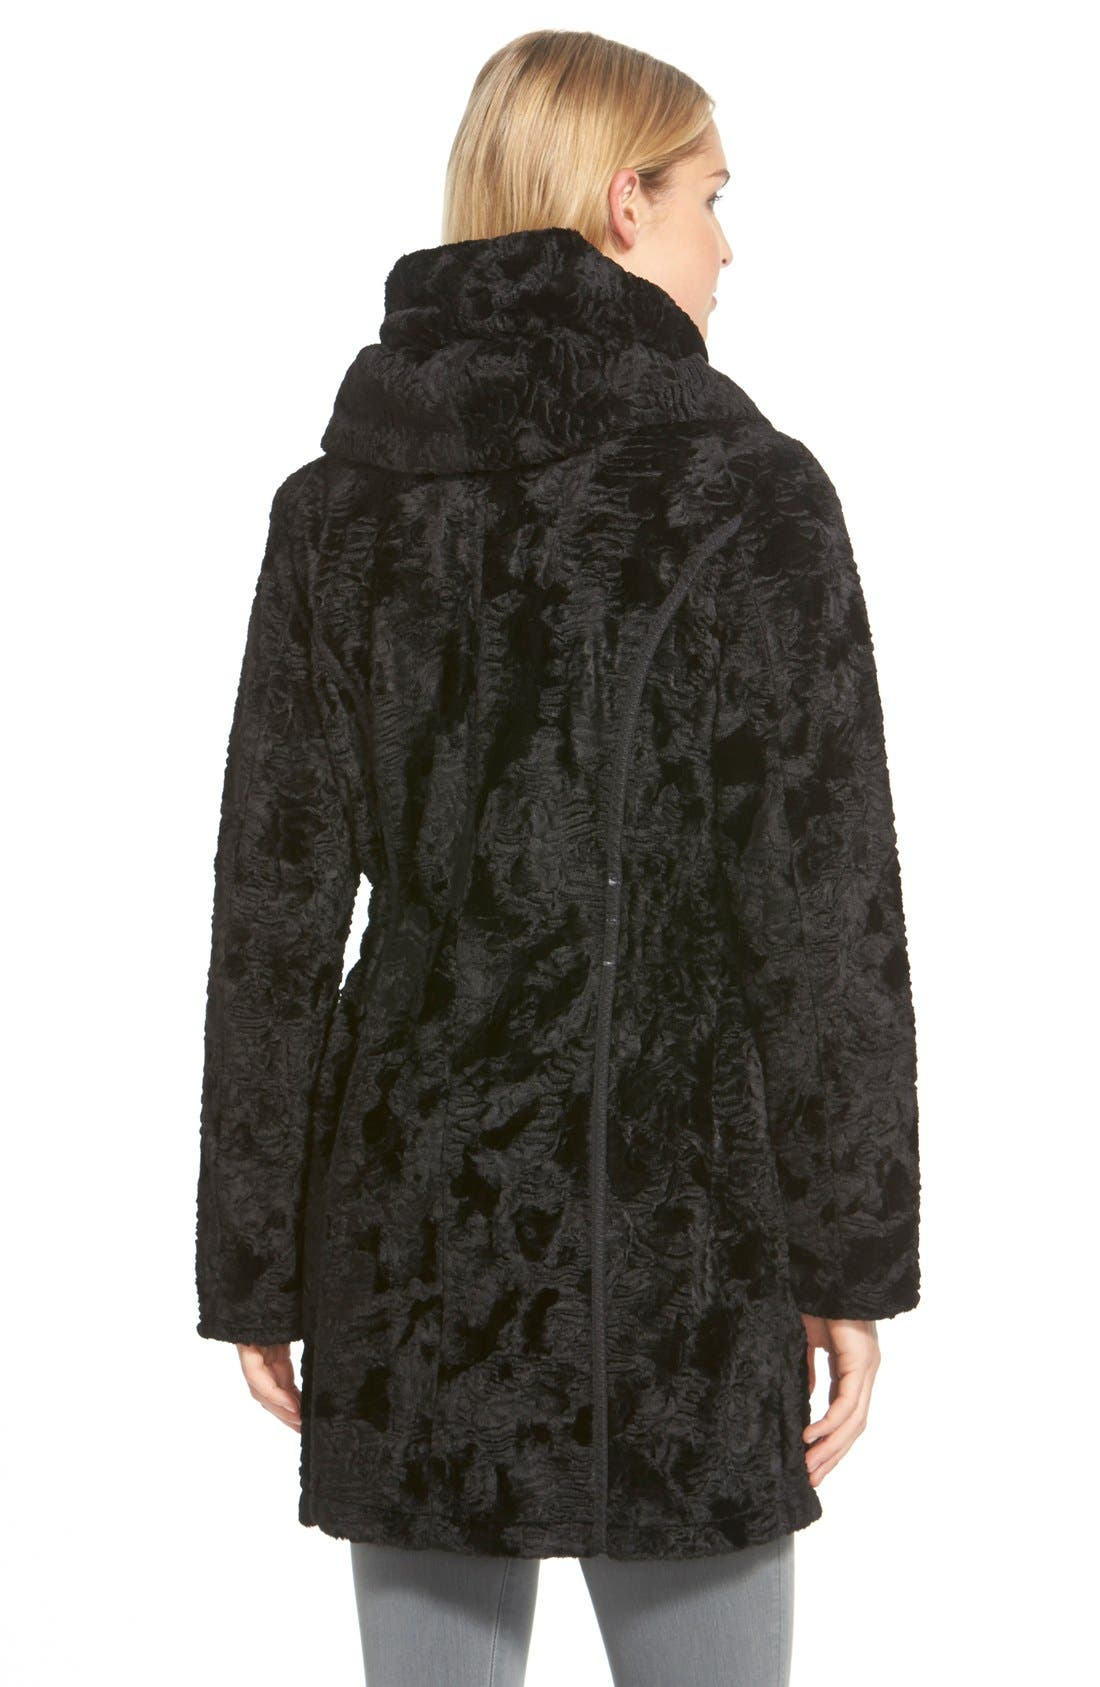 Alternate Image 3  - Laundry by Shelli Segal Reversible Faux Persian Lamb Fur Coat (Regular & Petite)